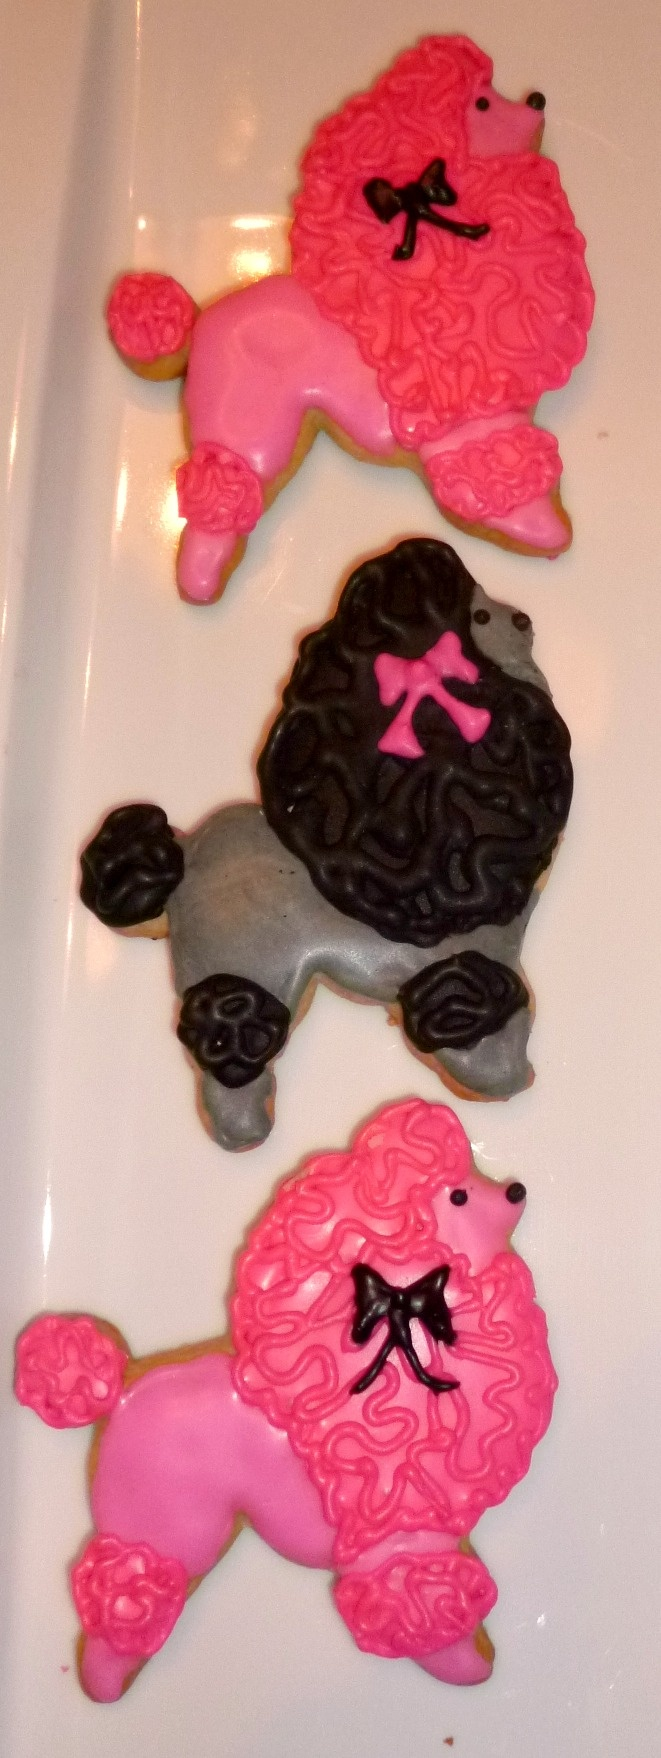 Pink & Black Poodle Cookies by D'lish Cupcake Lounge